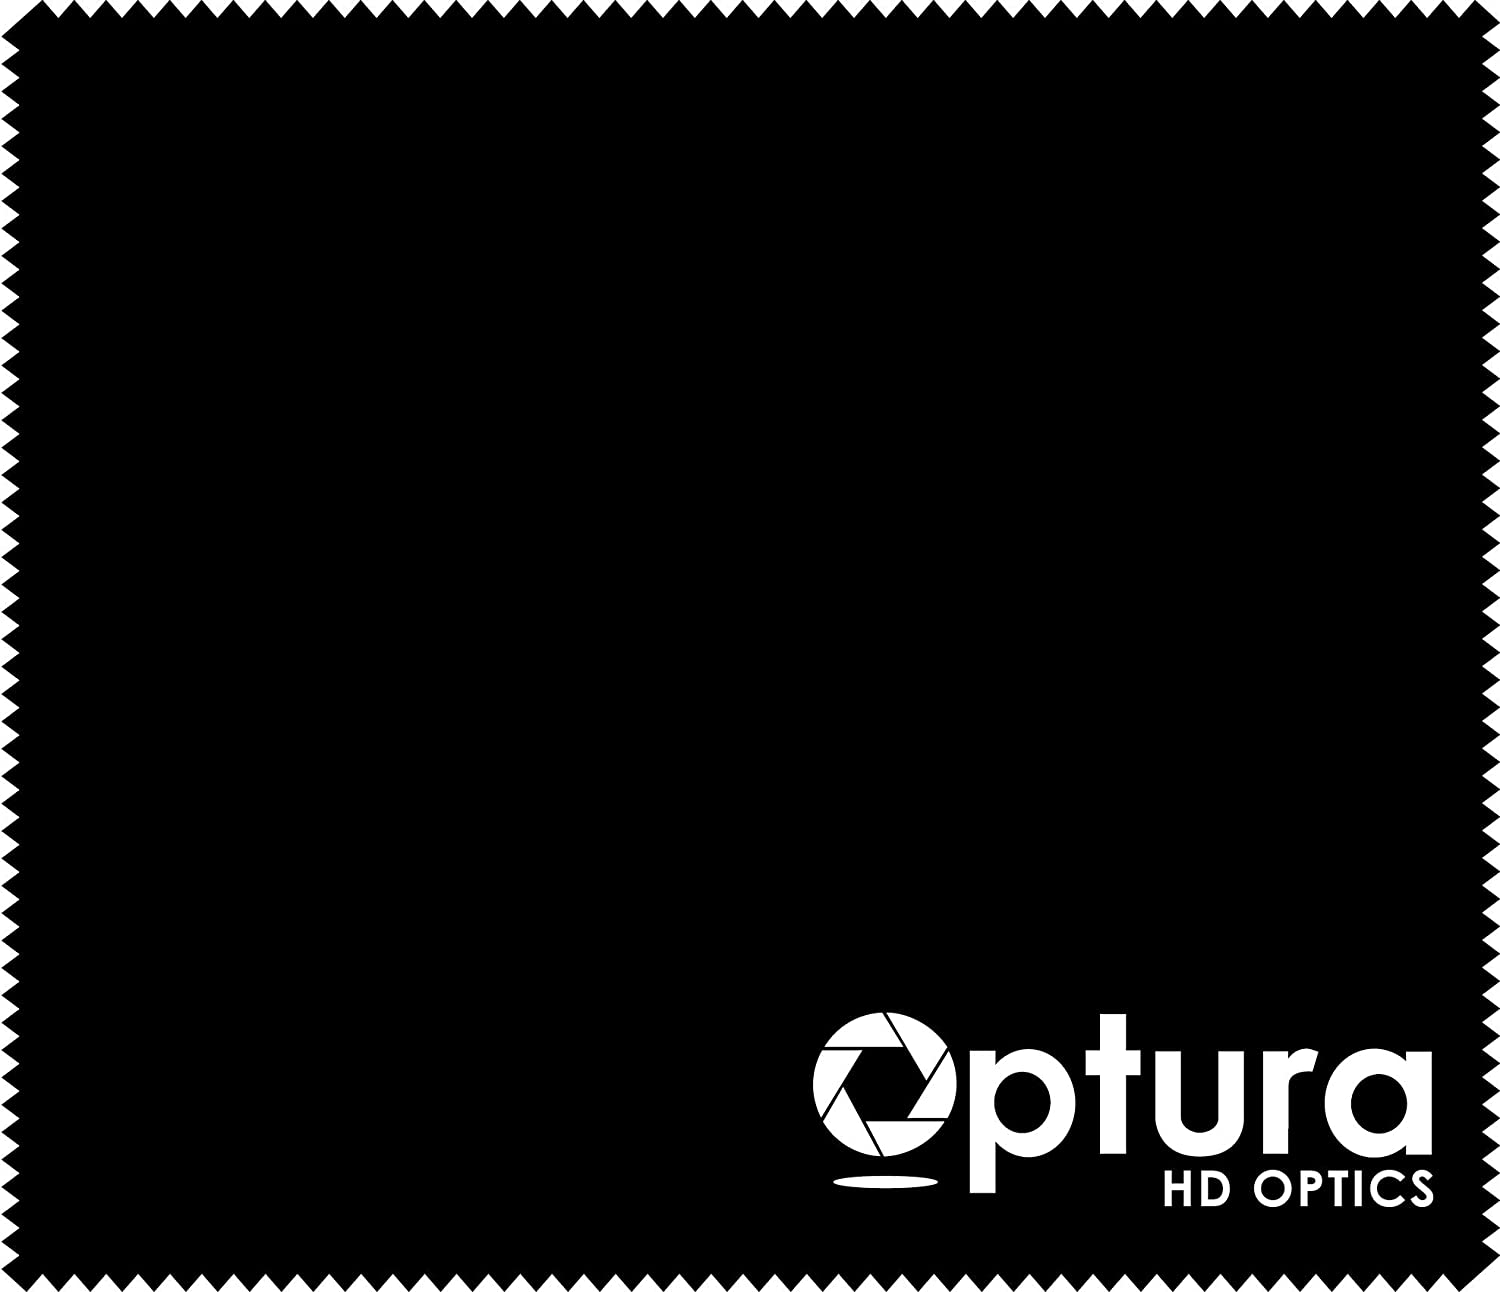 Black OPTURA HD Premium Materials Microfiber Cleaning Cloth for All Electronics iPads,iPhones,Smart Tv,Samsung Phones,Nikon Canon Sony Lenses and All Similar Items 6.5 x 5.5 Inches Pack of 6